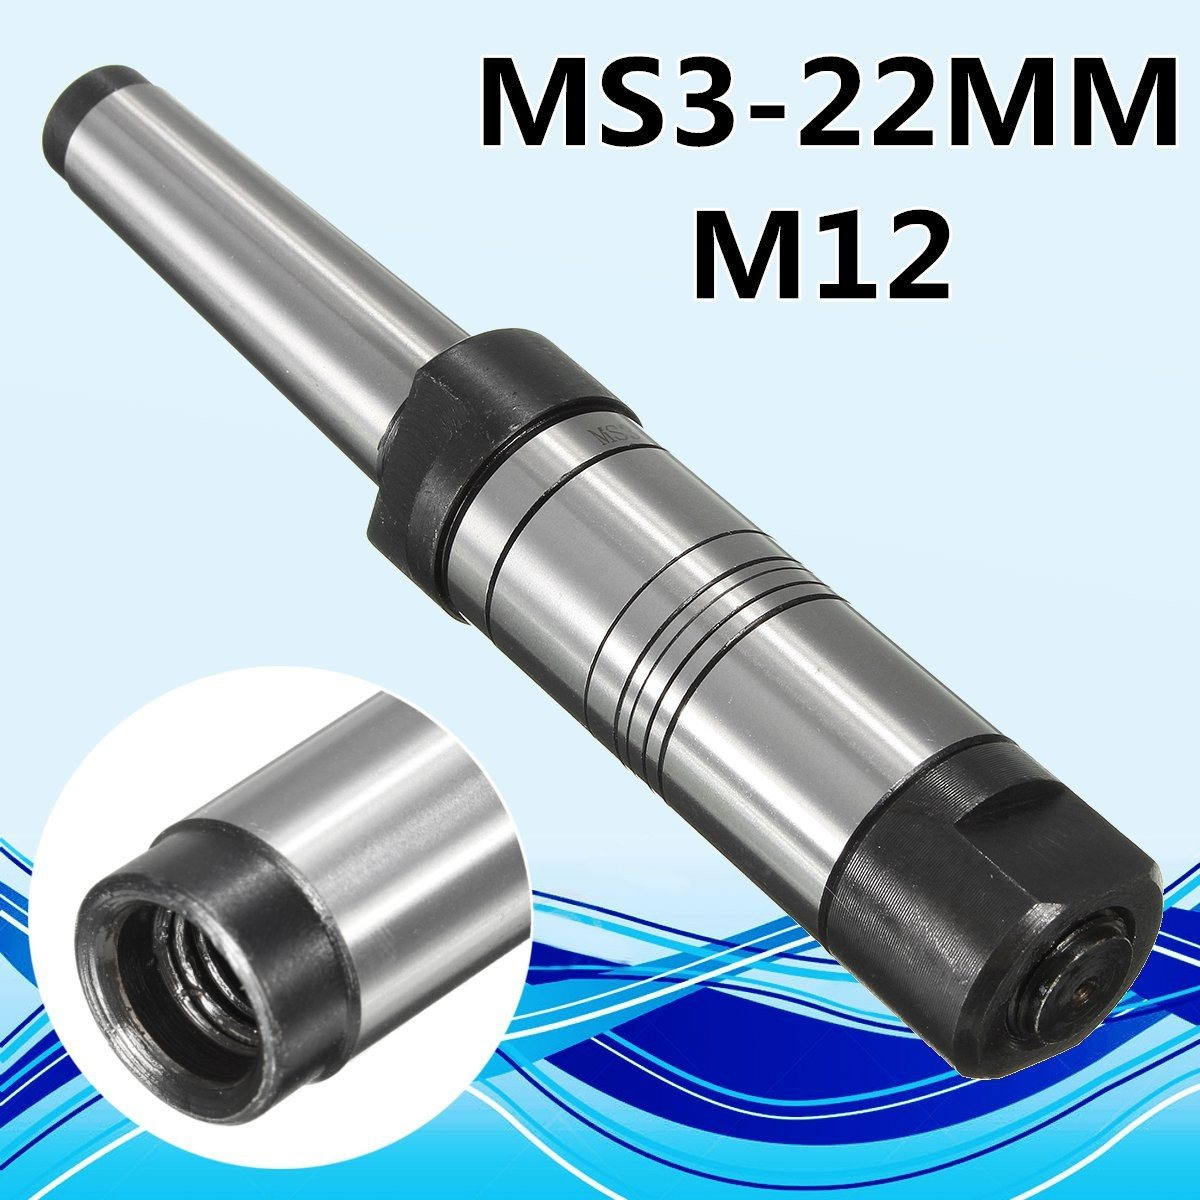 22mm MT3 Shank Milling Arbor Gear Milling Cutter Holder Morse Taper MS3 For 13mm Bore High Hardness 45 steel hight quality morse taper shank drill chucks set cnc lathe drill chuck 5 to 20mm b22 with no 3 morse taper mt3 with key